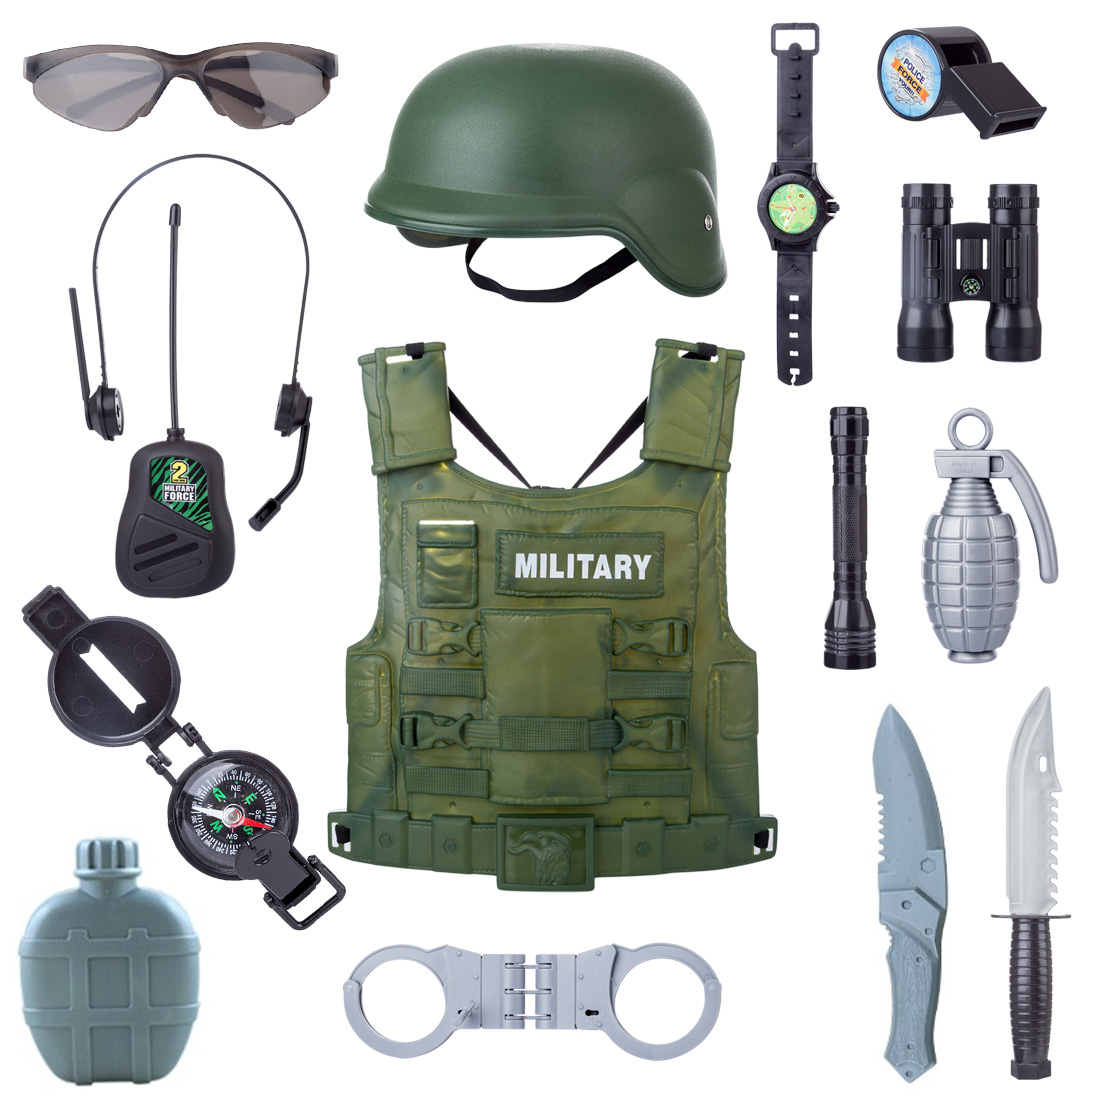 New 14Pcs Children Simulation Policeman Role Play Military Combat Playset For Boys Kids Playing Set